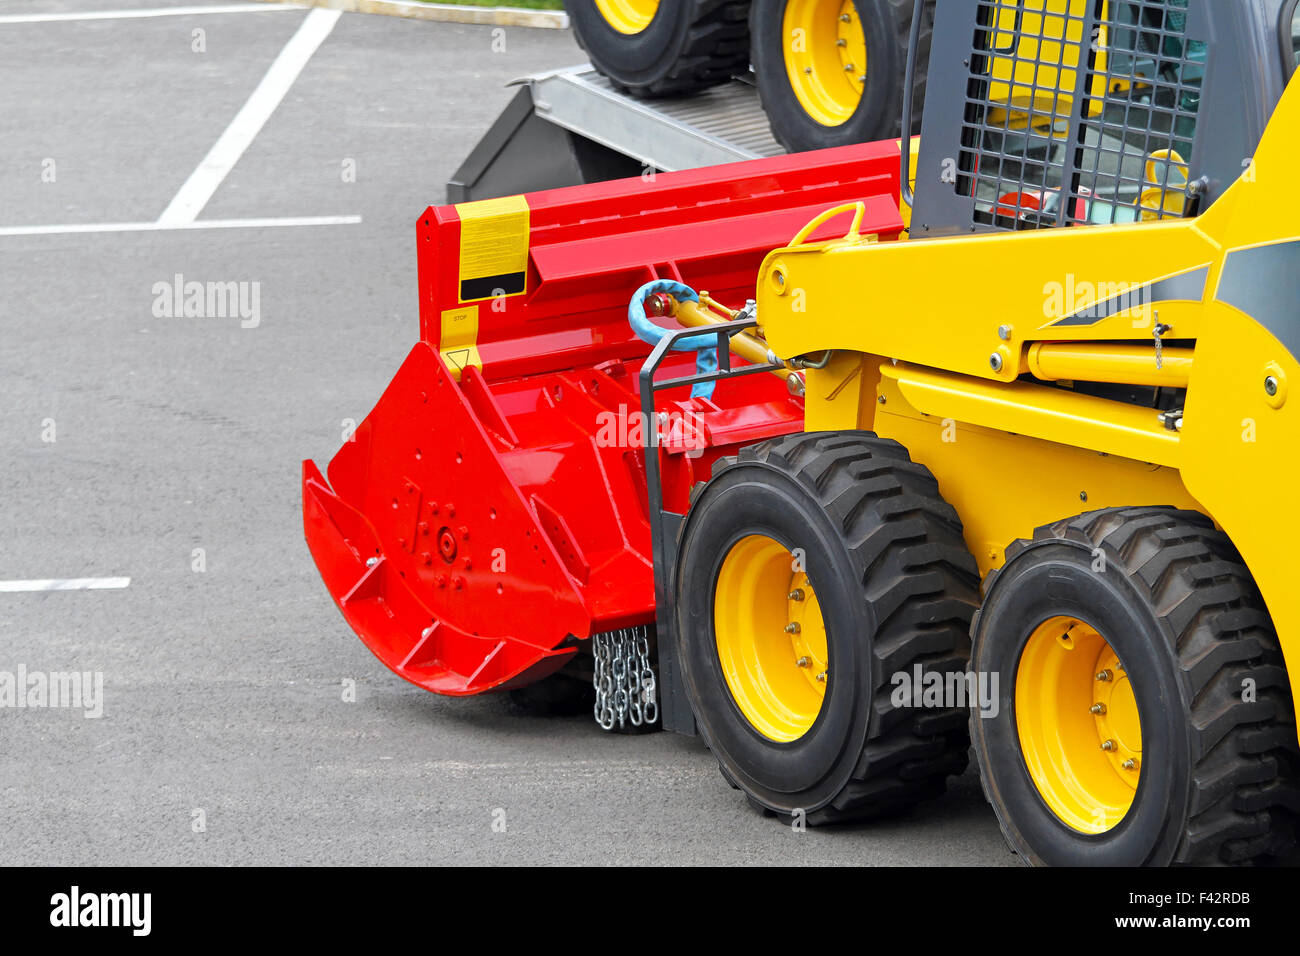 Skid steer attachment - Stock Image